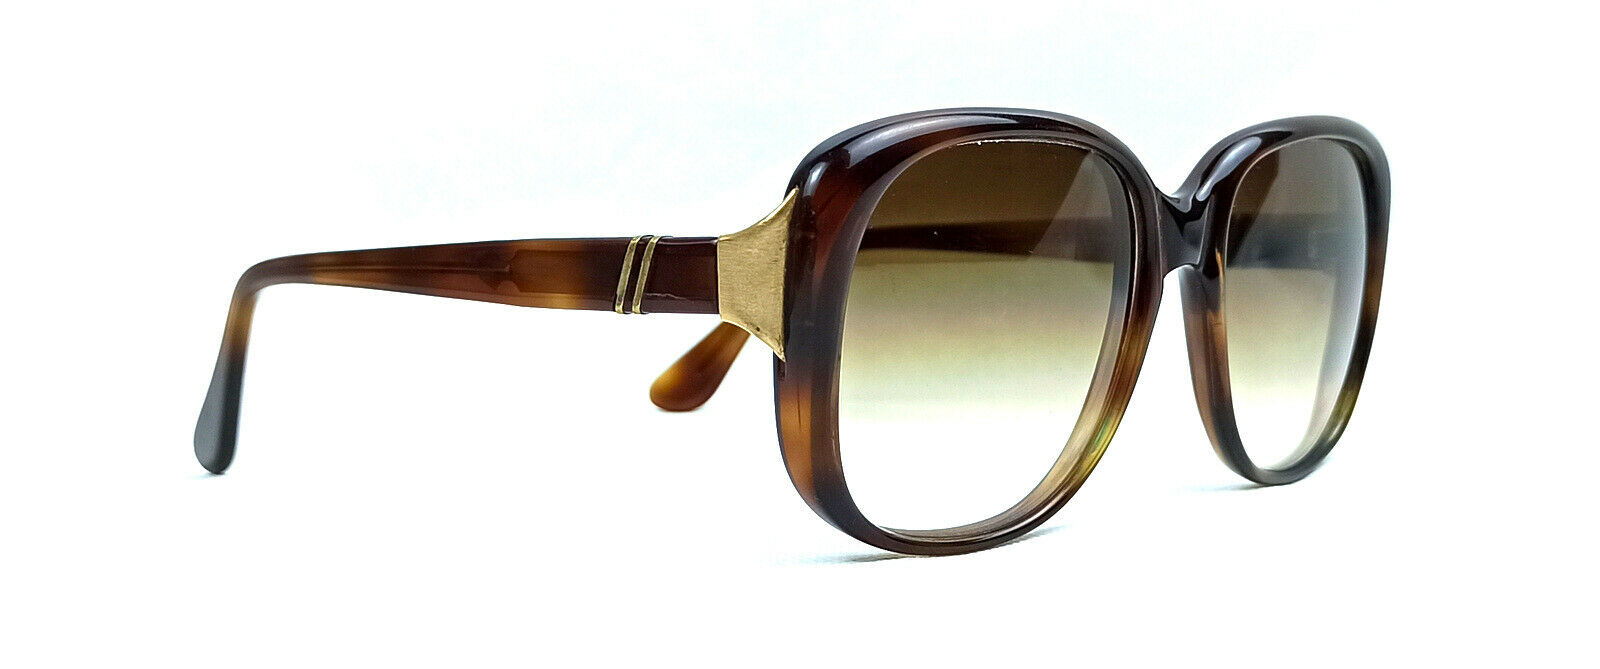 ICONIC 70s SUNGLASSES VINTAGE BREV. LASTES PERSOL MOD.7019 MADE IN ITALY